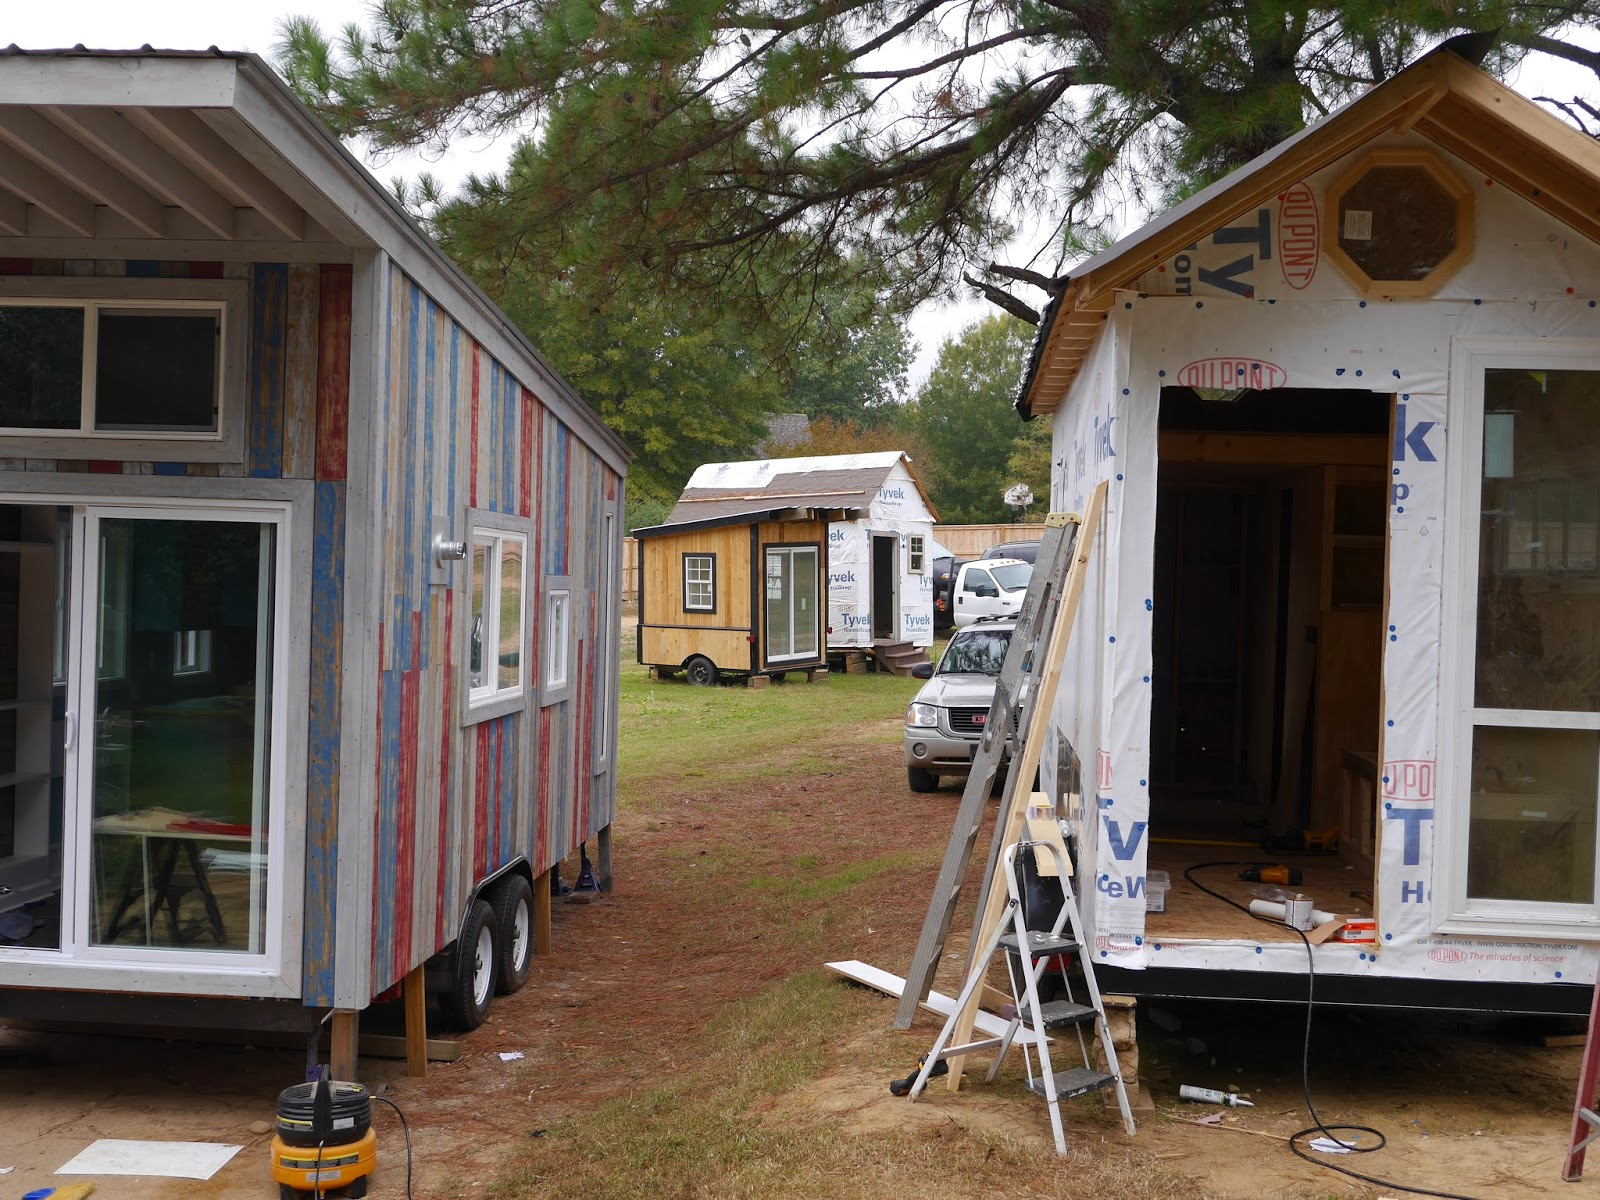 Relaxshackscom TINY HOUSE BUILDING and DESIGN WORKSHOP 3 Days